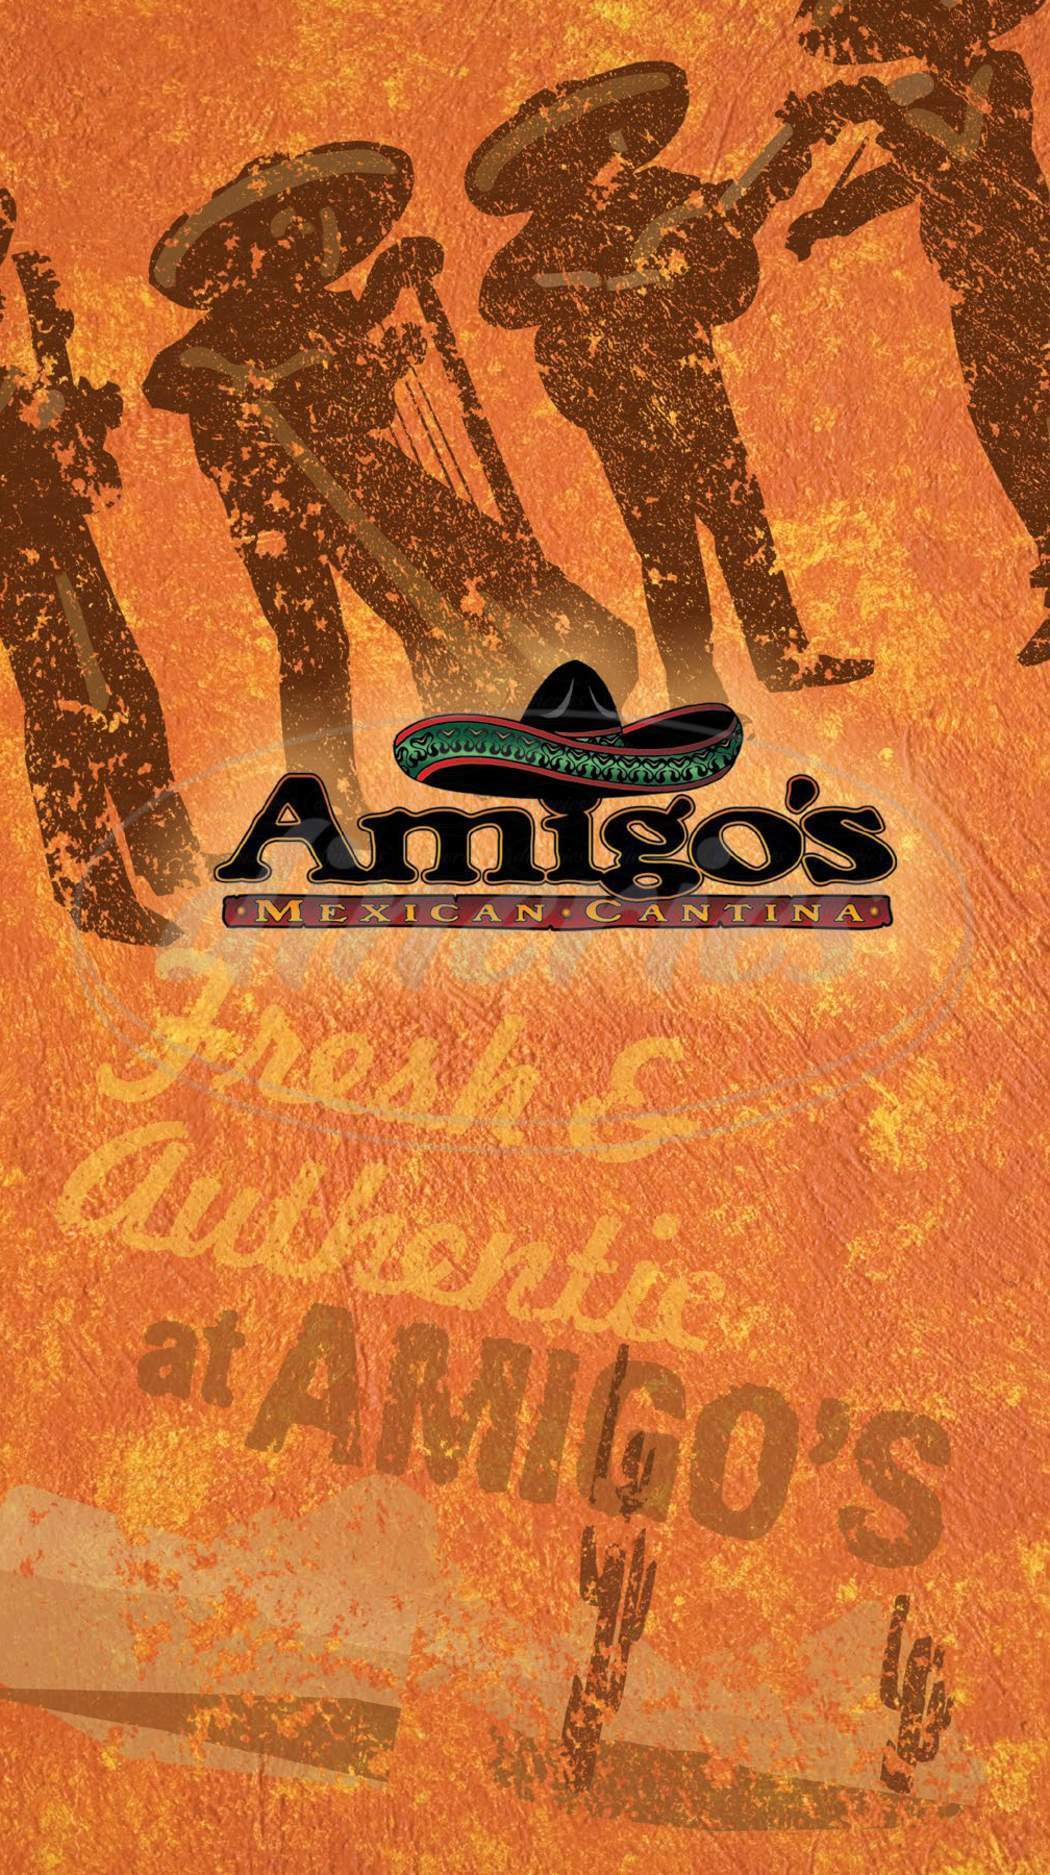 menu for Amigo's Mexican Cantina